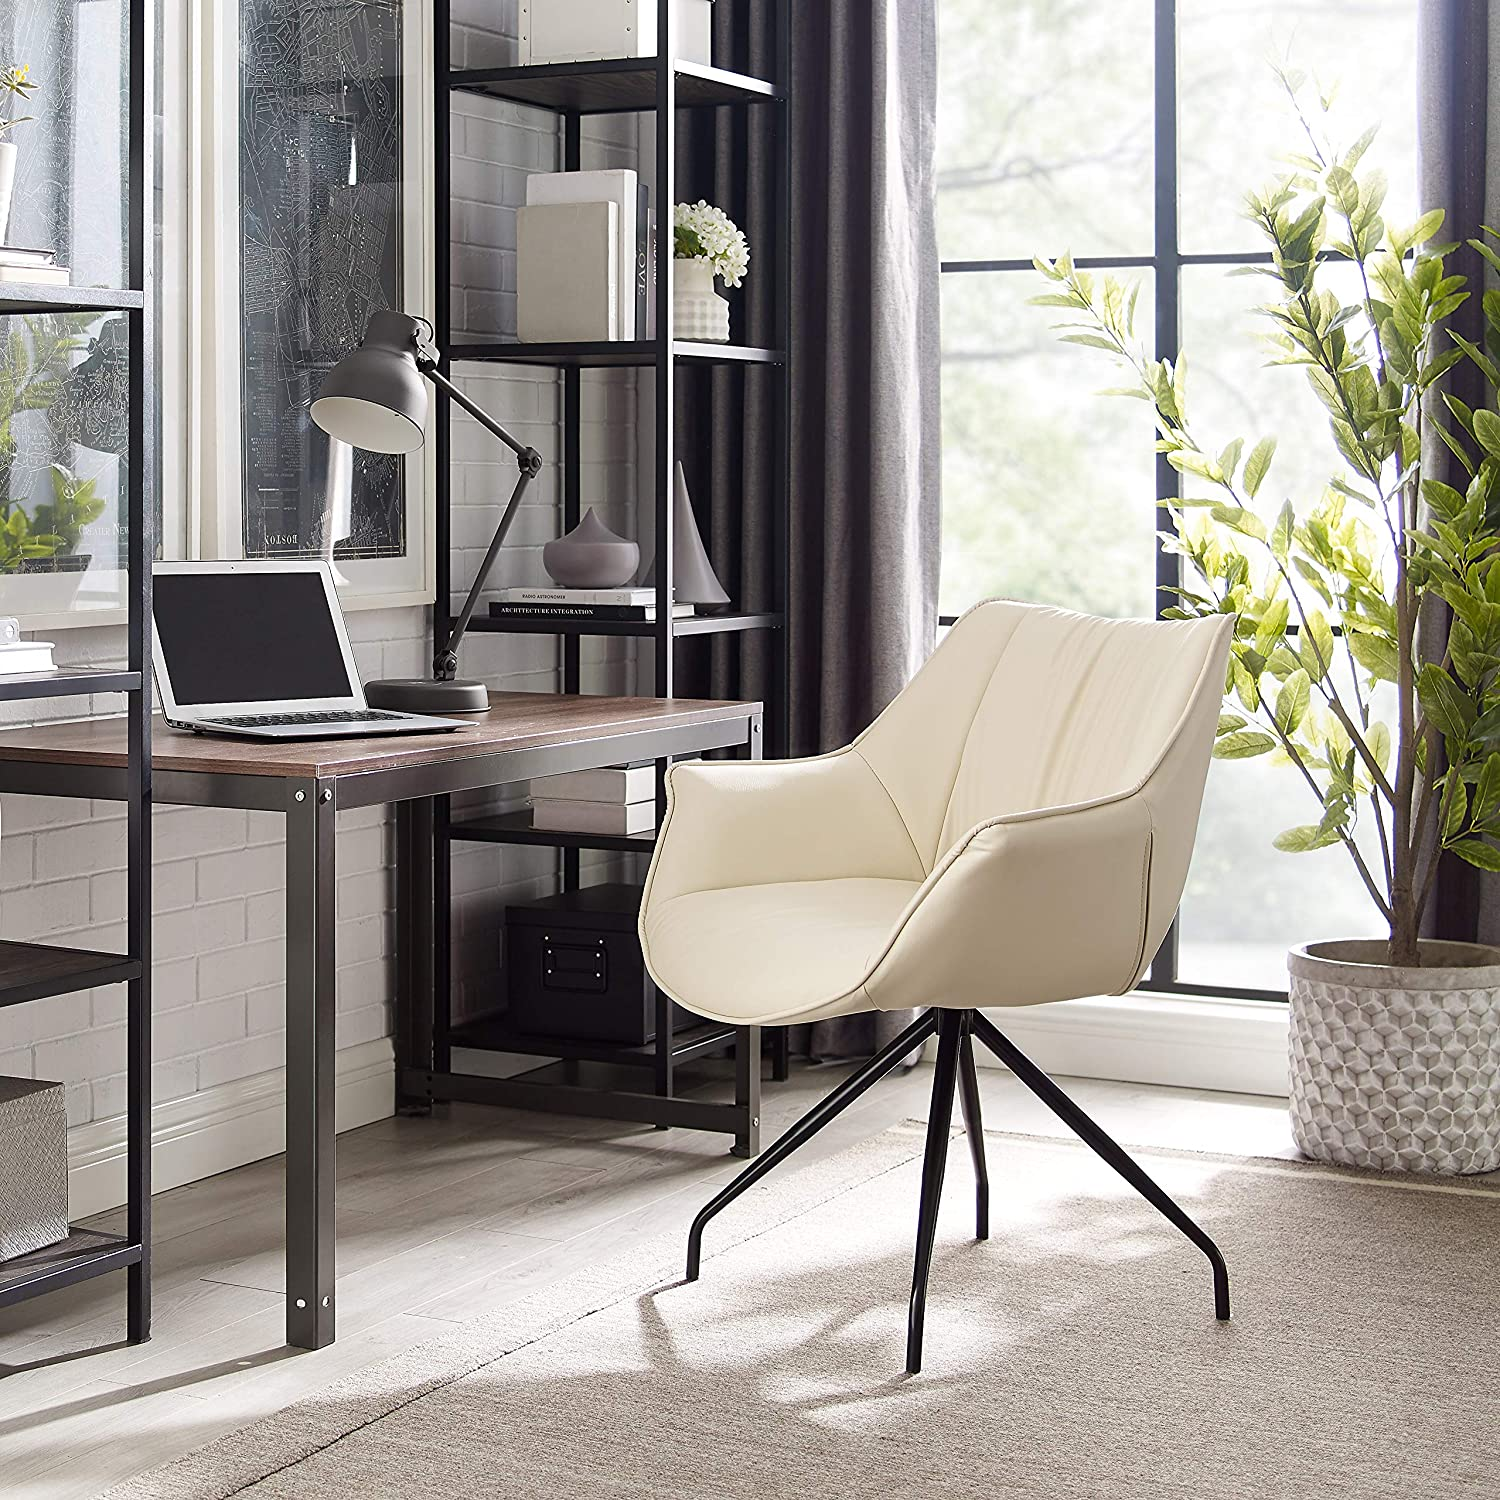 Volans Modern Mid Back Leather Upholstery Home Office Chair with Armrest, No Casters in Black Metal Legs Swivel Desk Chair, Off White